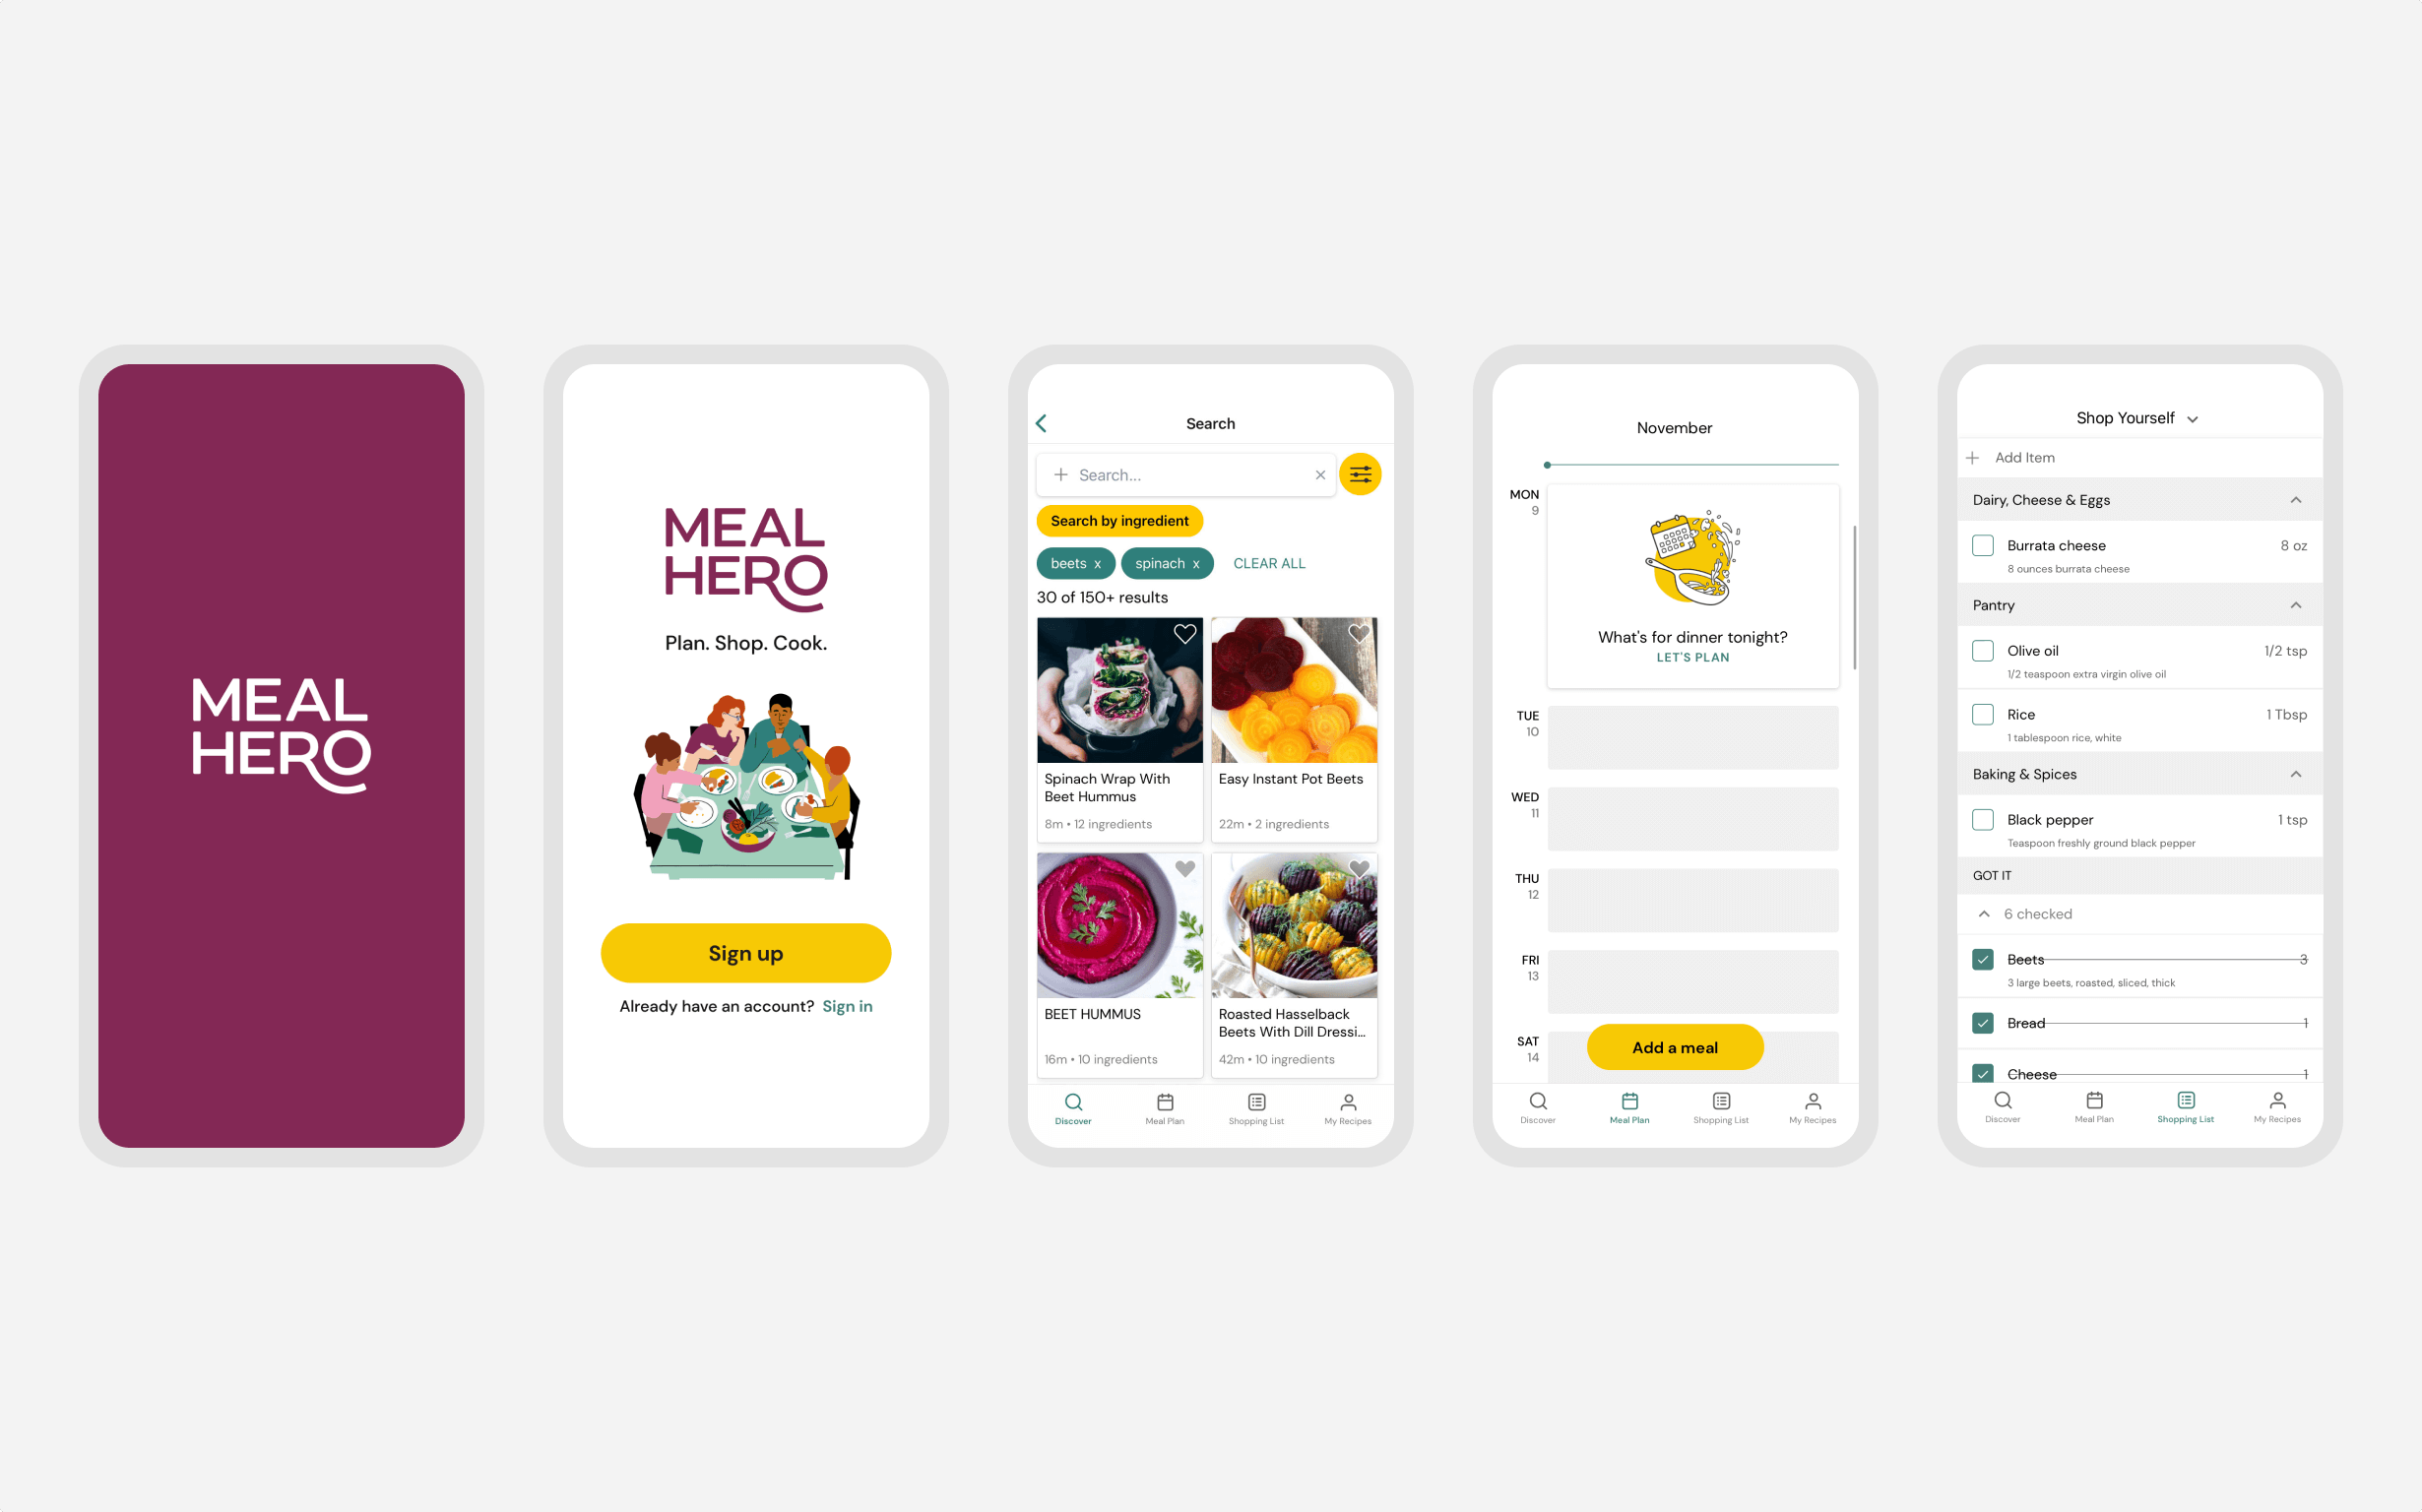 Five designs for Meal Hero's mobile app showing pages to sign up, search for meals, and schedule meals.